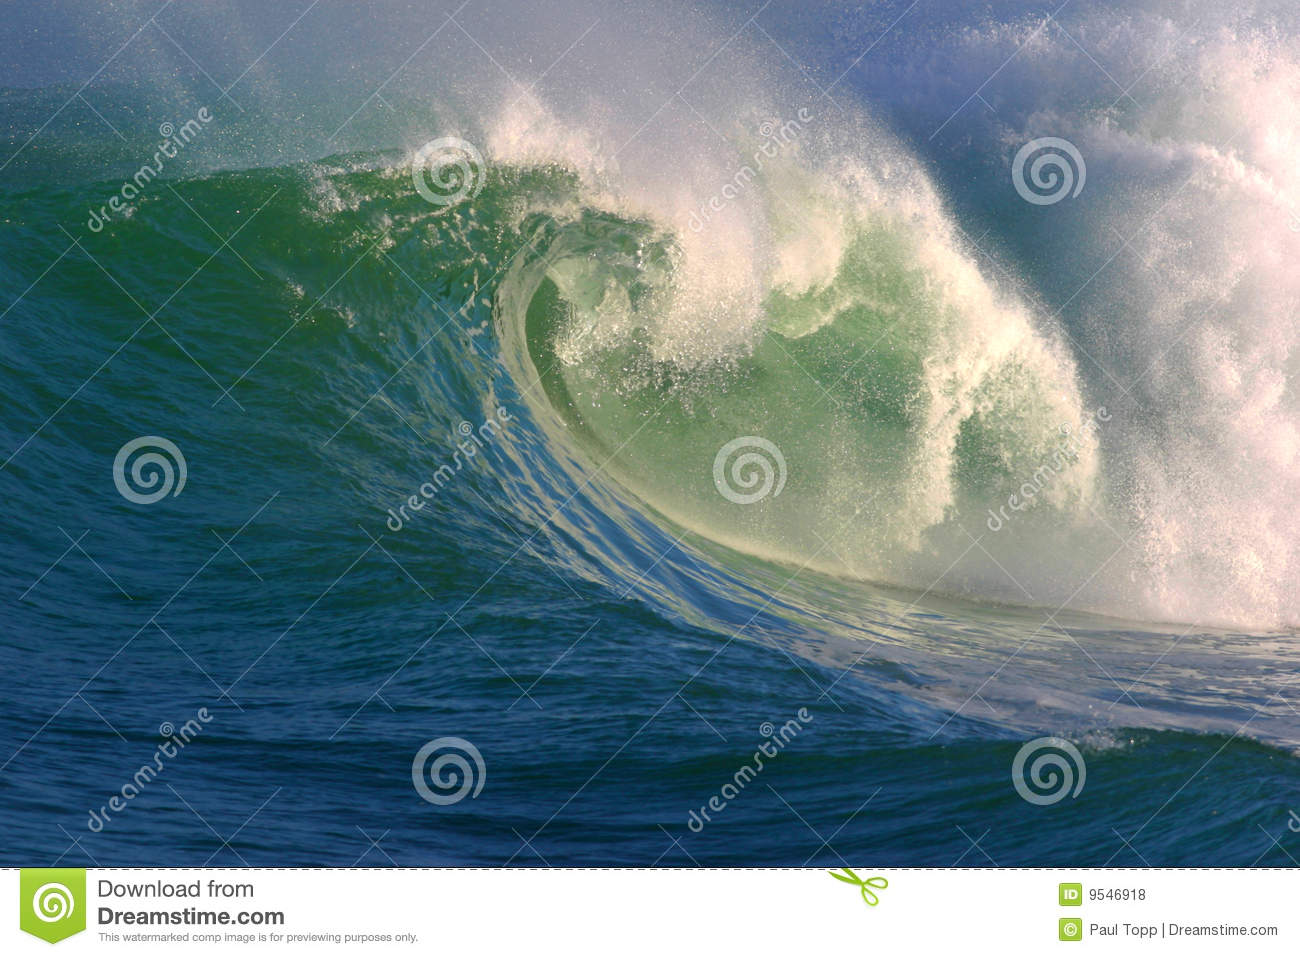 Ocean Wave of Water